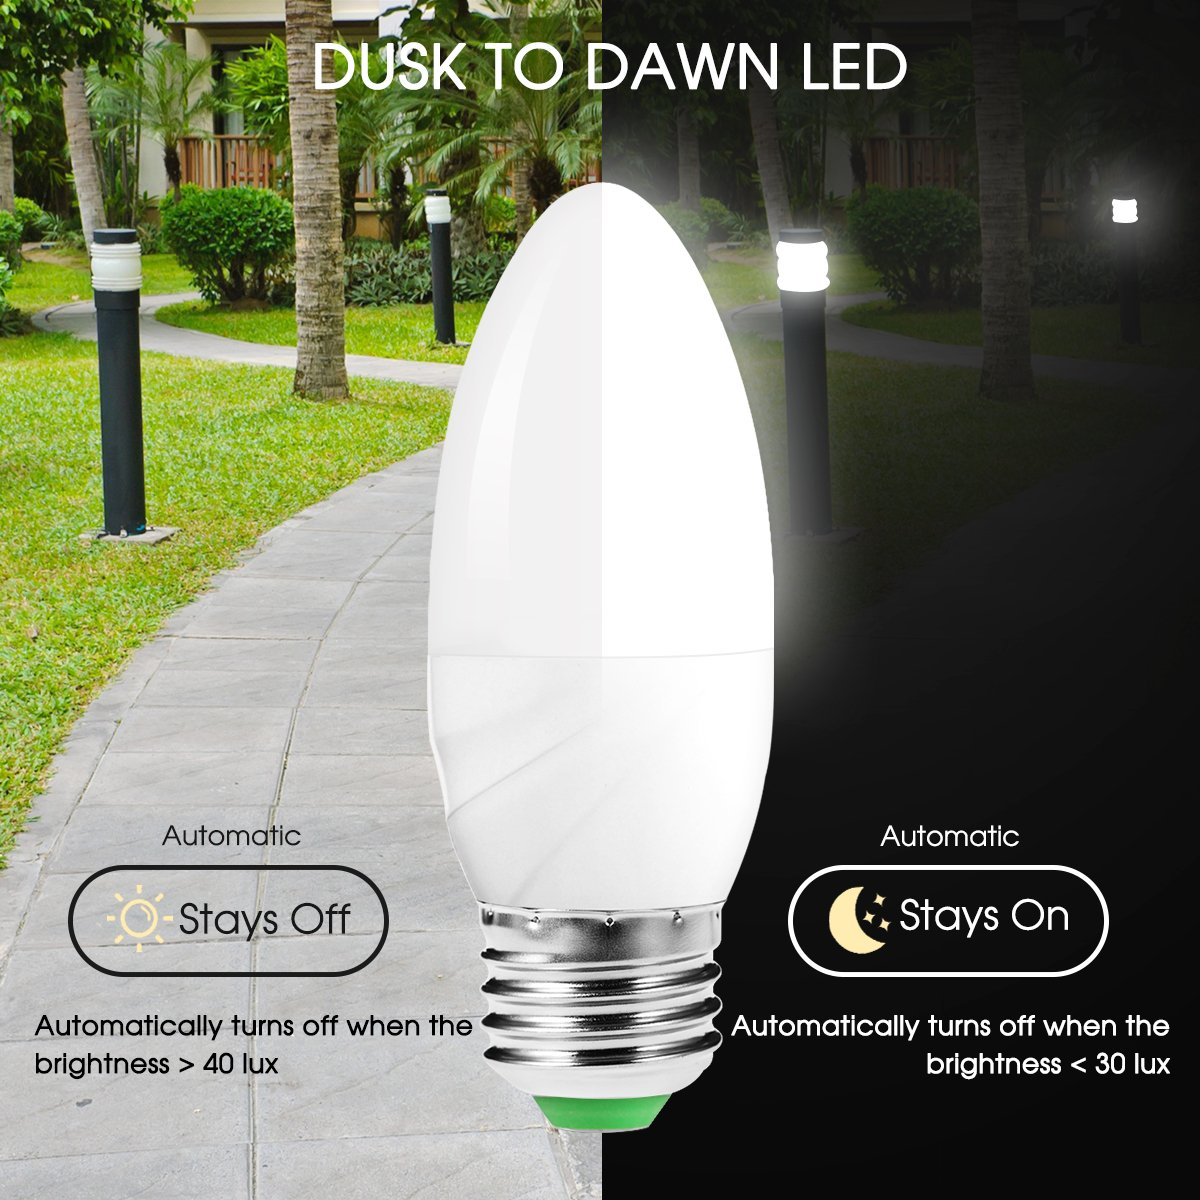 JandCase 6W=60W Light Sensor Candle Bulb, Day White 6000K Dusk Till Dawn Bulb, E27 LED Bulb 550LM Auto On/Off Night Light Bulb, Smart Indoor/Outdoor Lamp Lighting for Garage, Hallway, Porch, 2 Pack